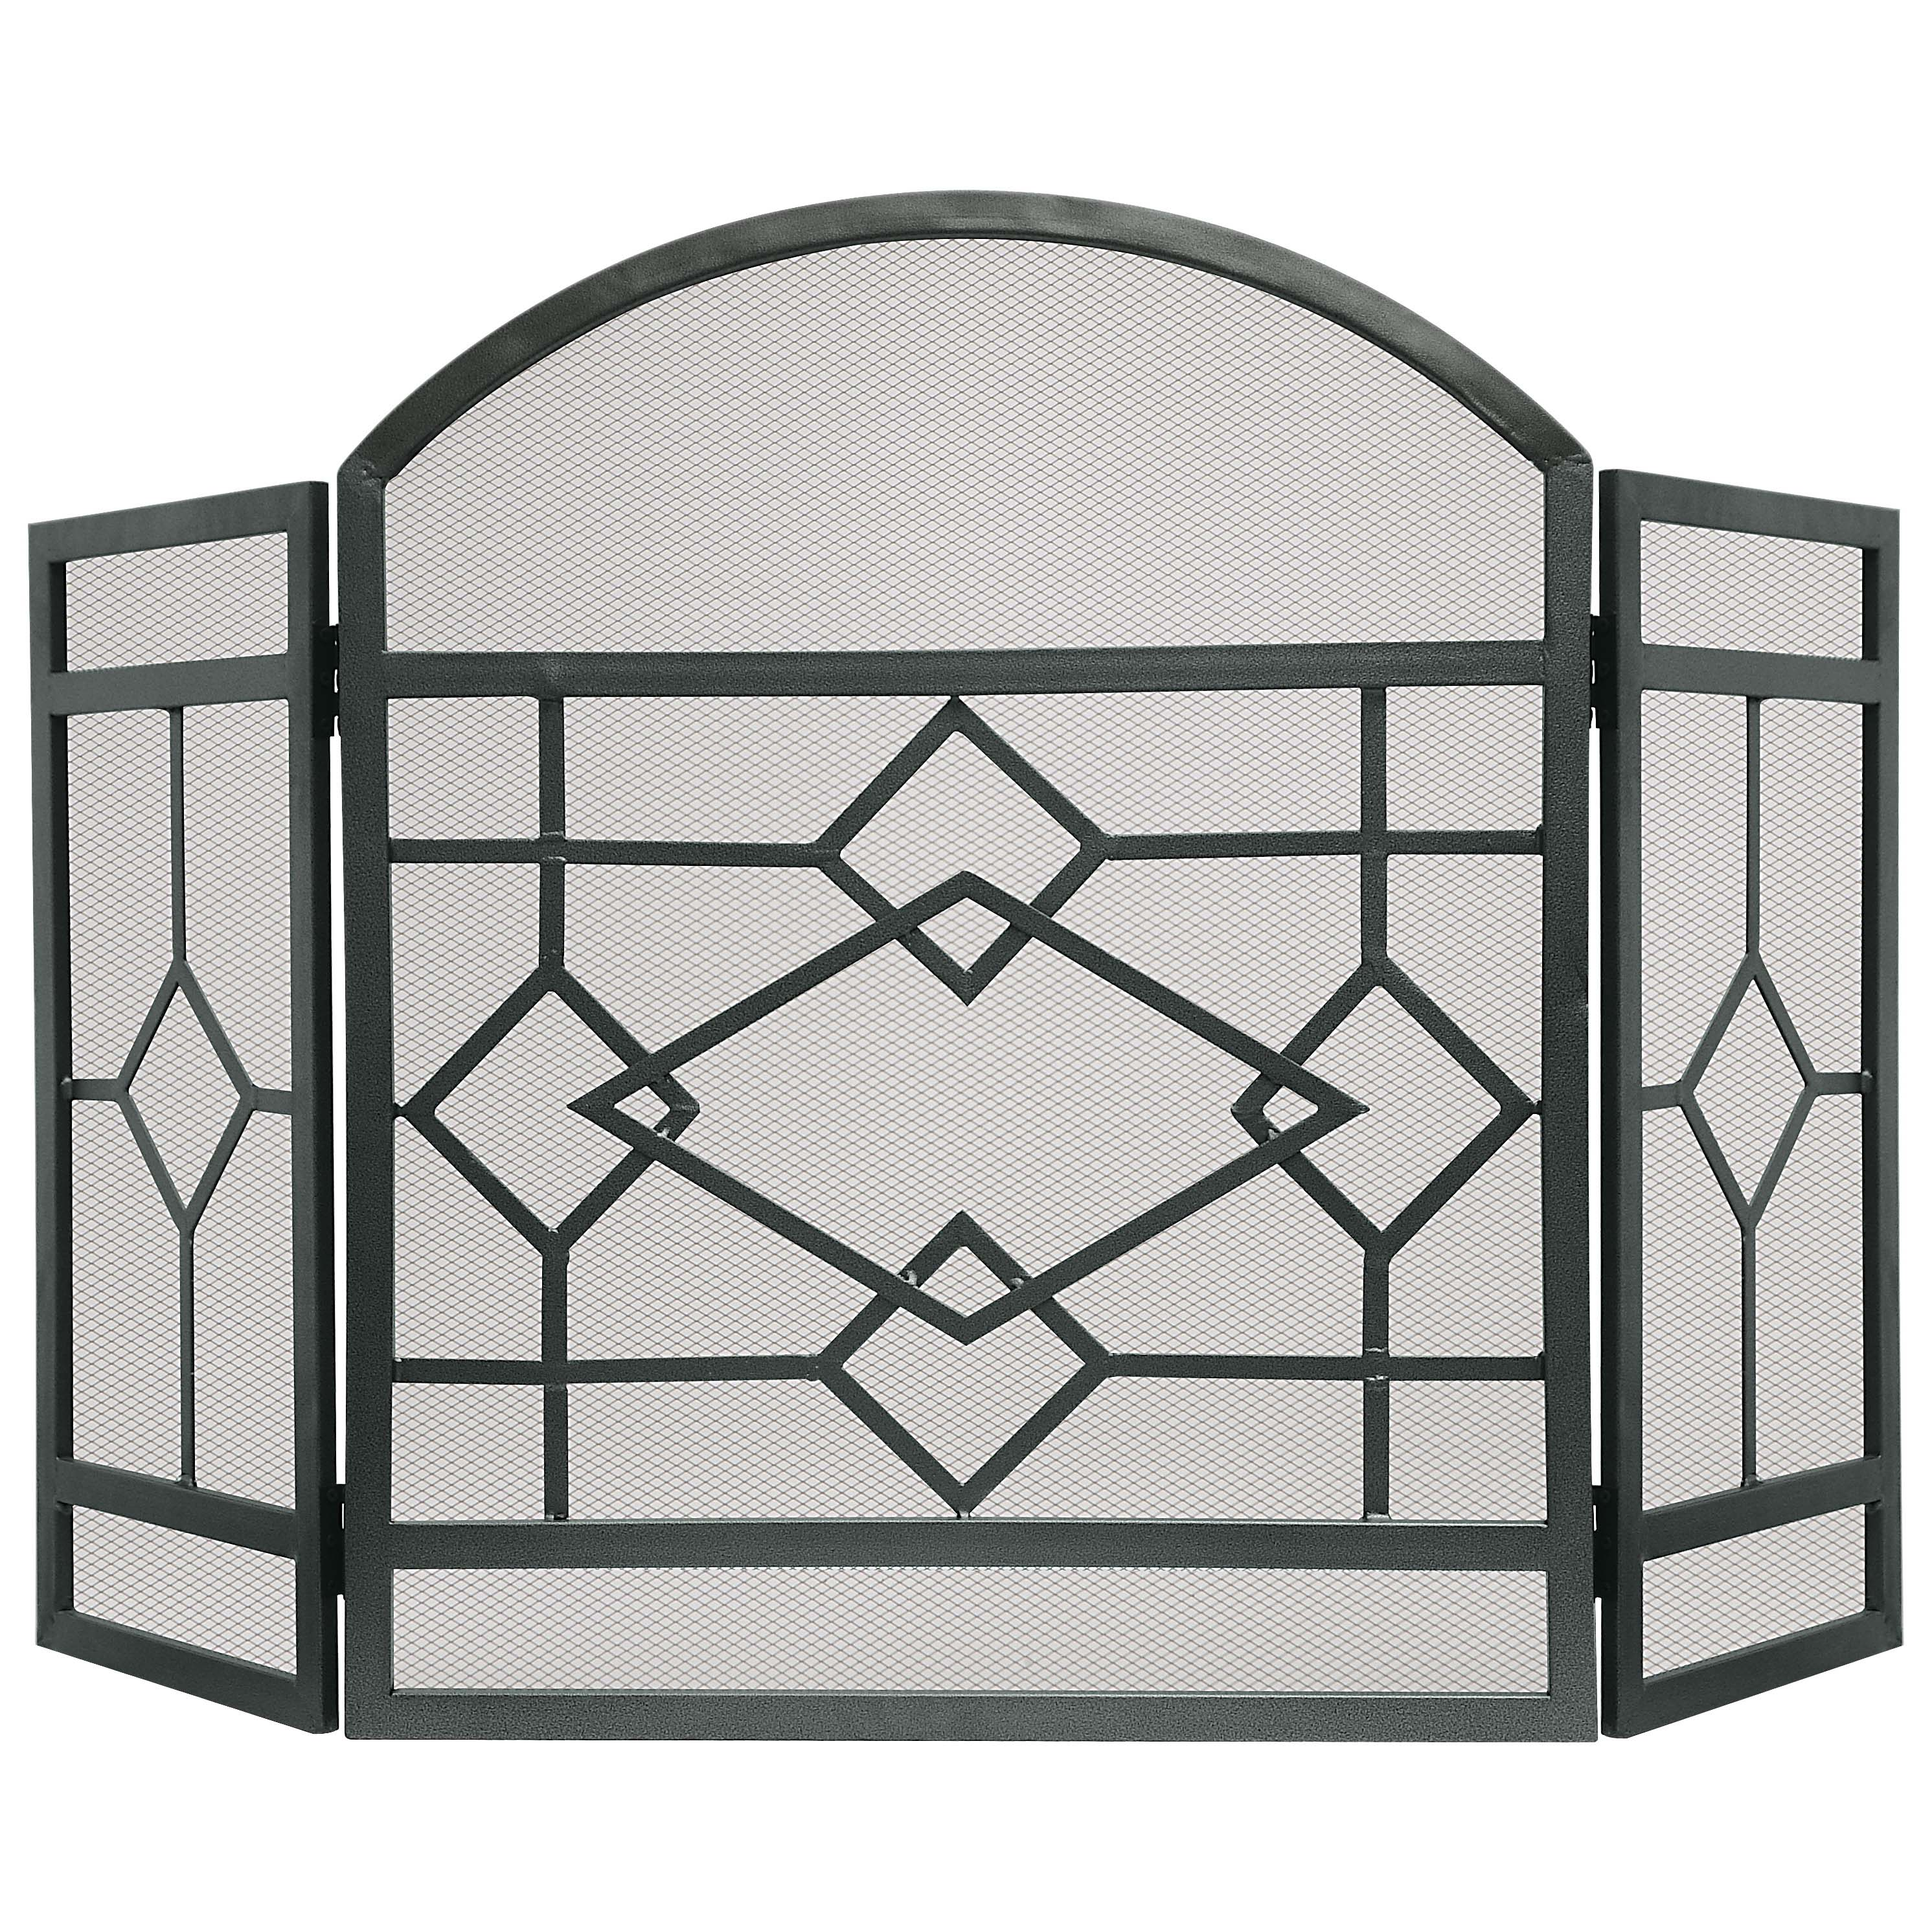 Picture of Simple Spaces CPO61153NN Fireplace Screen, 51-1/2 in W, 32 in H, Steel